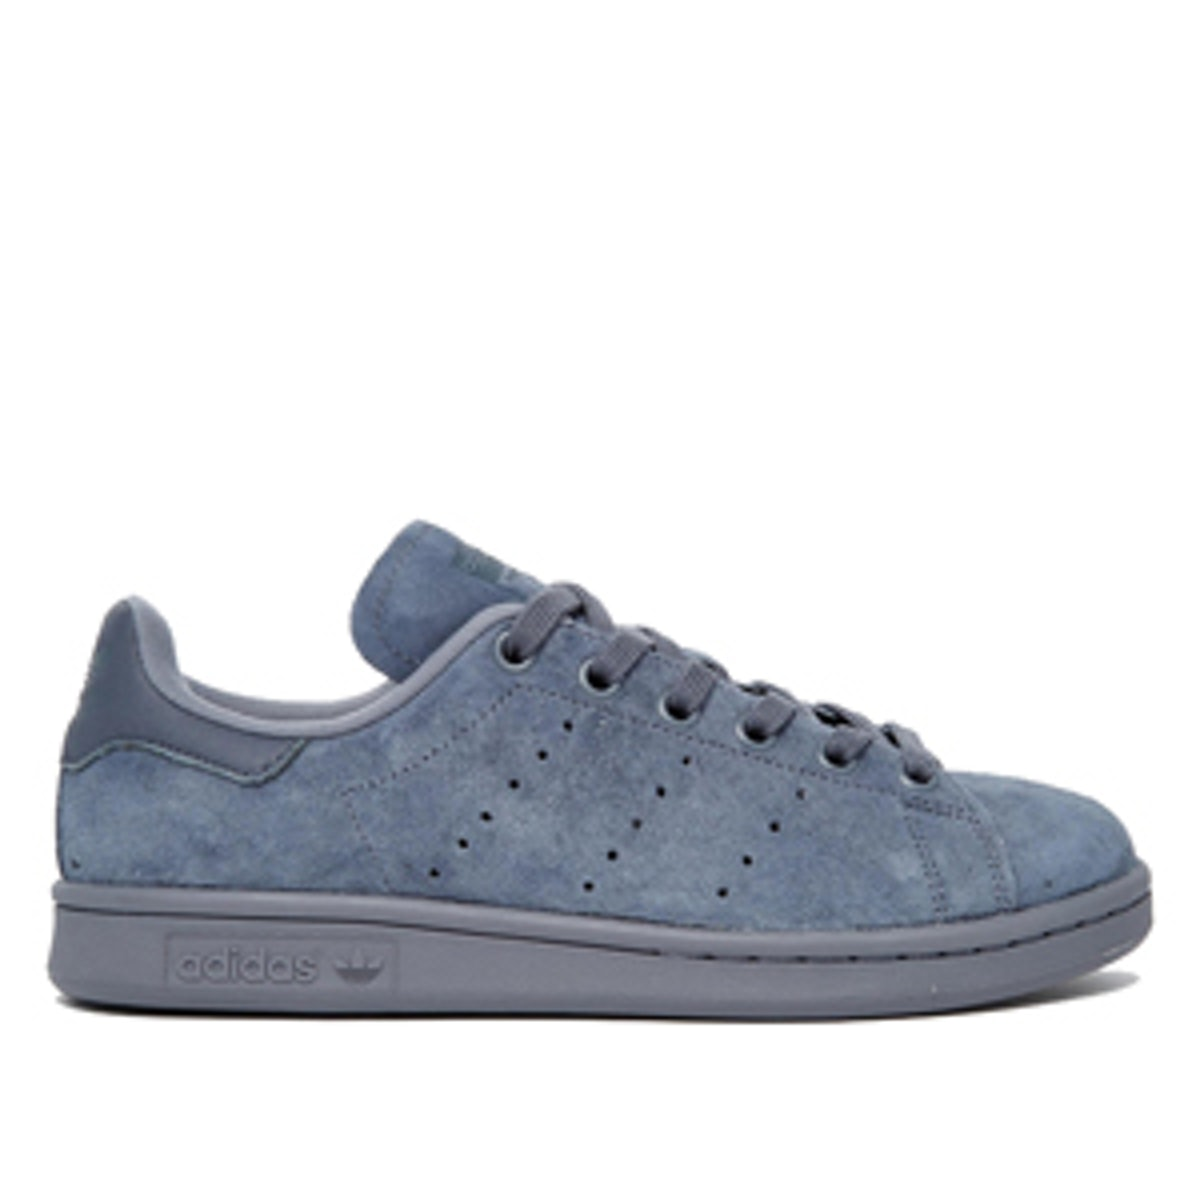 Onix Stan Smith Sneakers